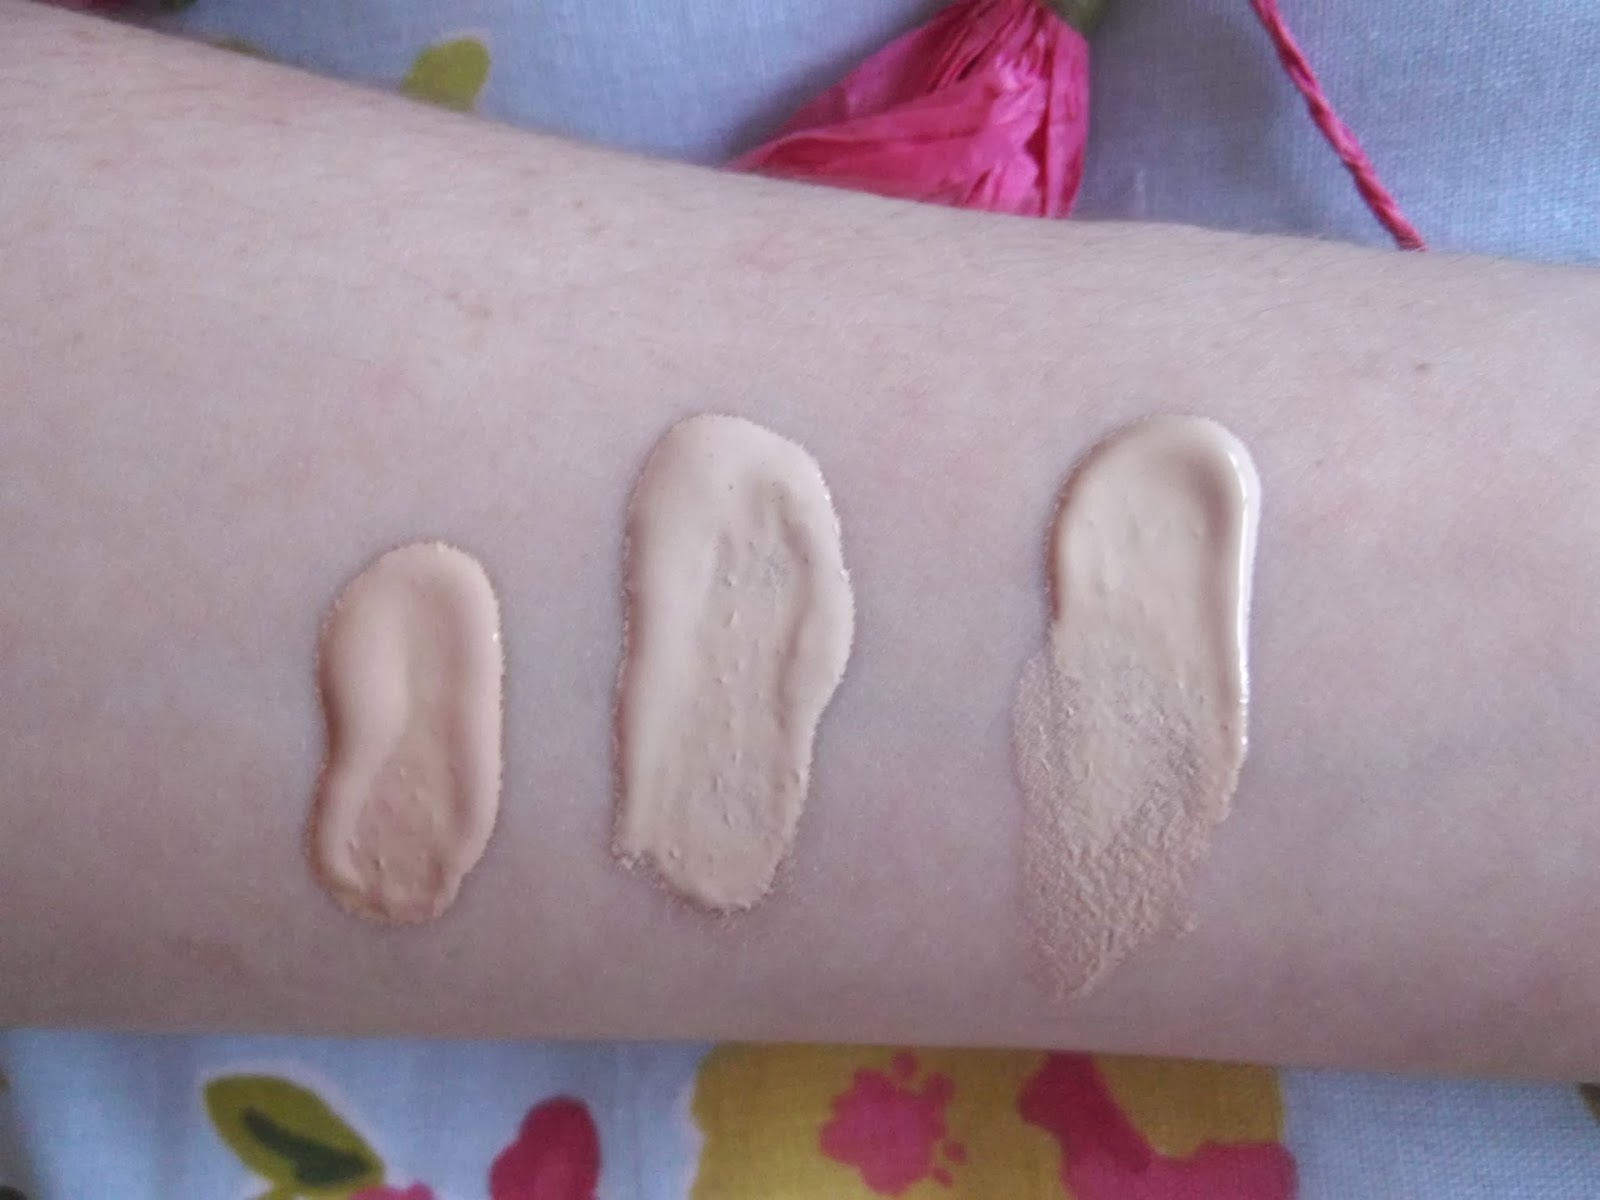 An image of Liz Earle Signature Foundation in Porcelain Swatch, Bourjois Healthy Mix Foundation in Light Vanilla Swatch and Gosh Illuminating CC Cream in Porcelain Swatch